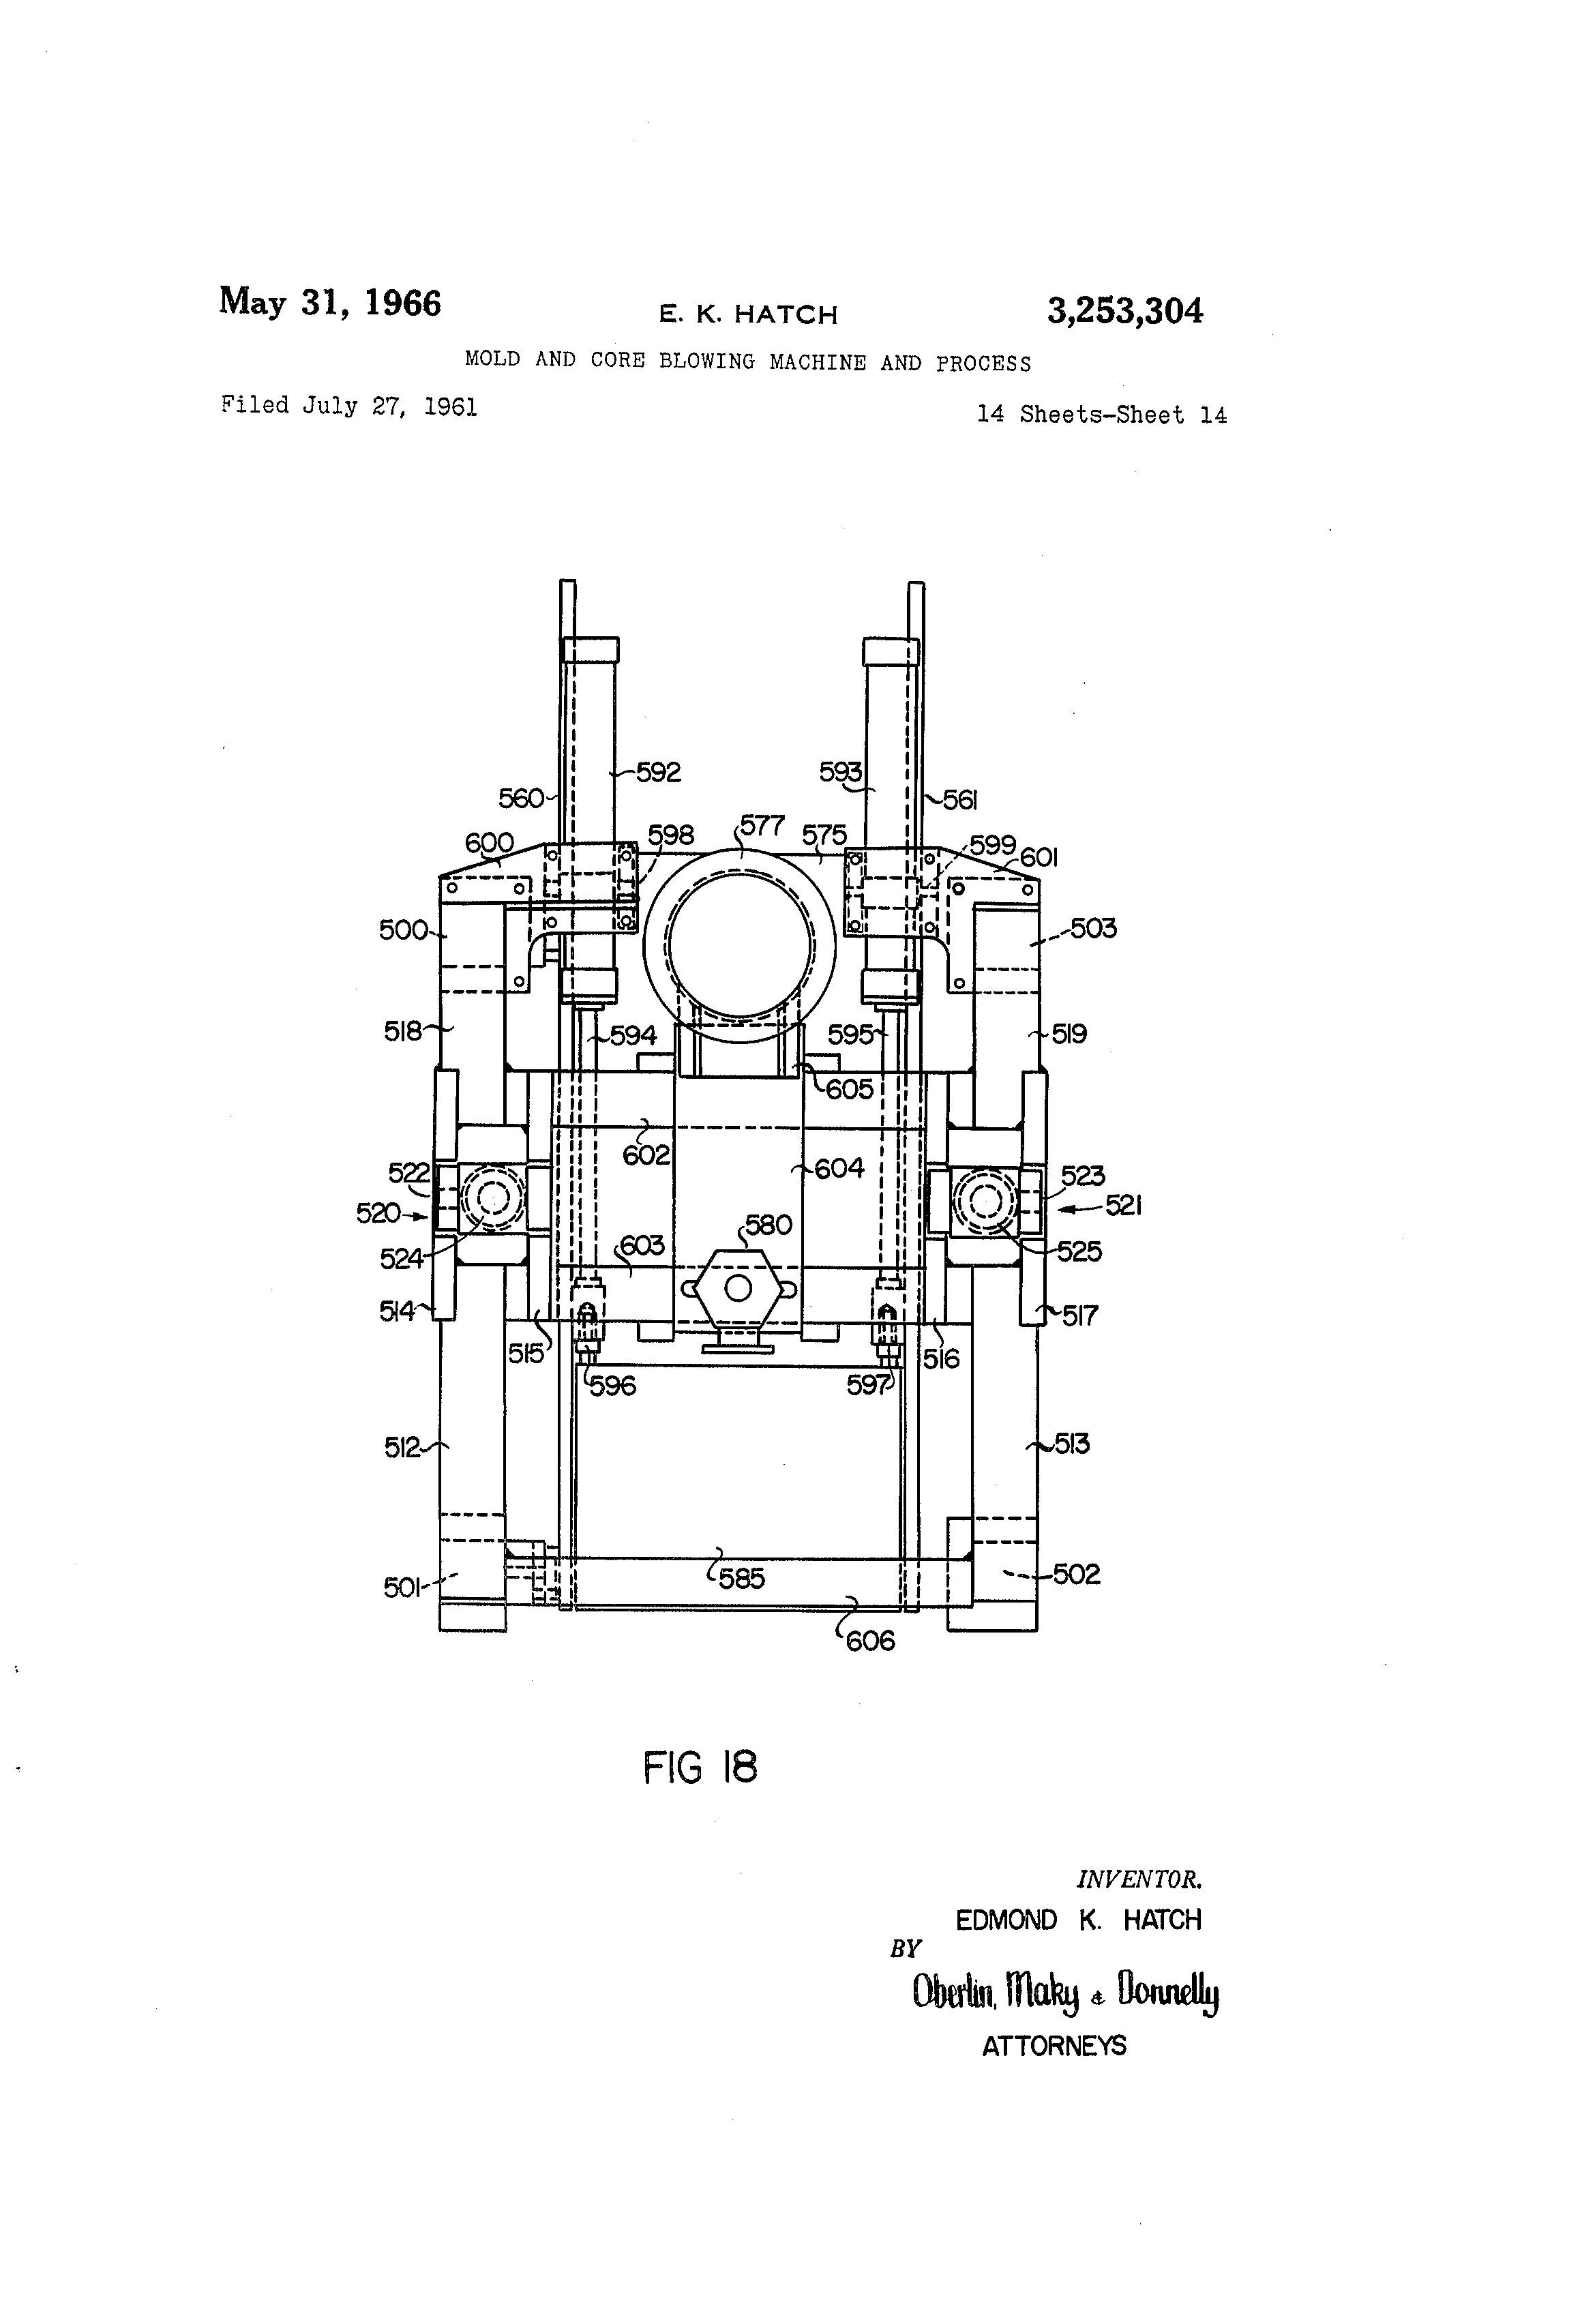 US3253304 13 patent us3253304 mold and core blowing machine and process  at creativeand.co